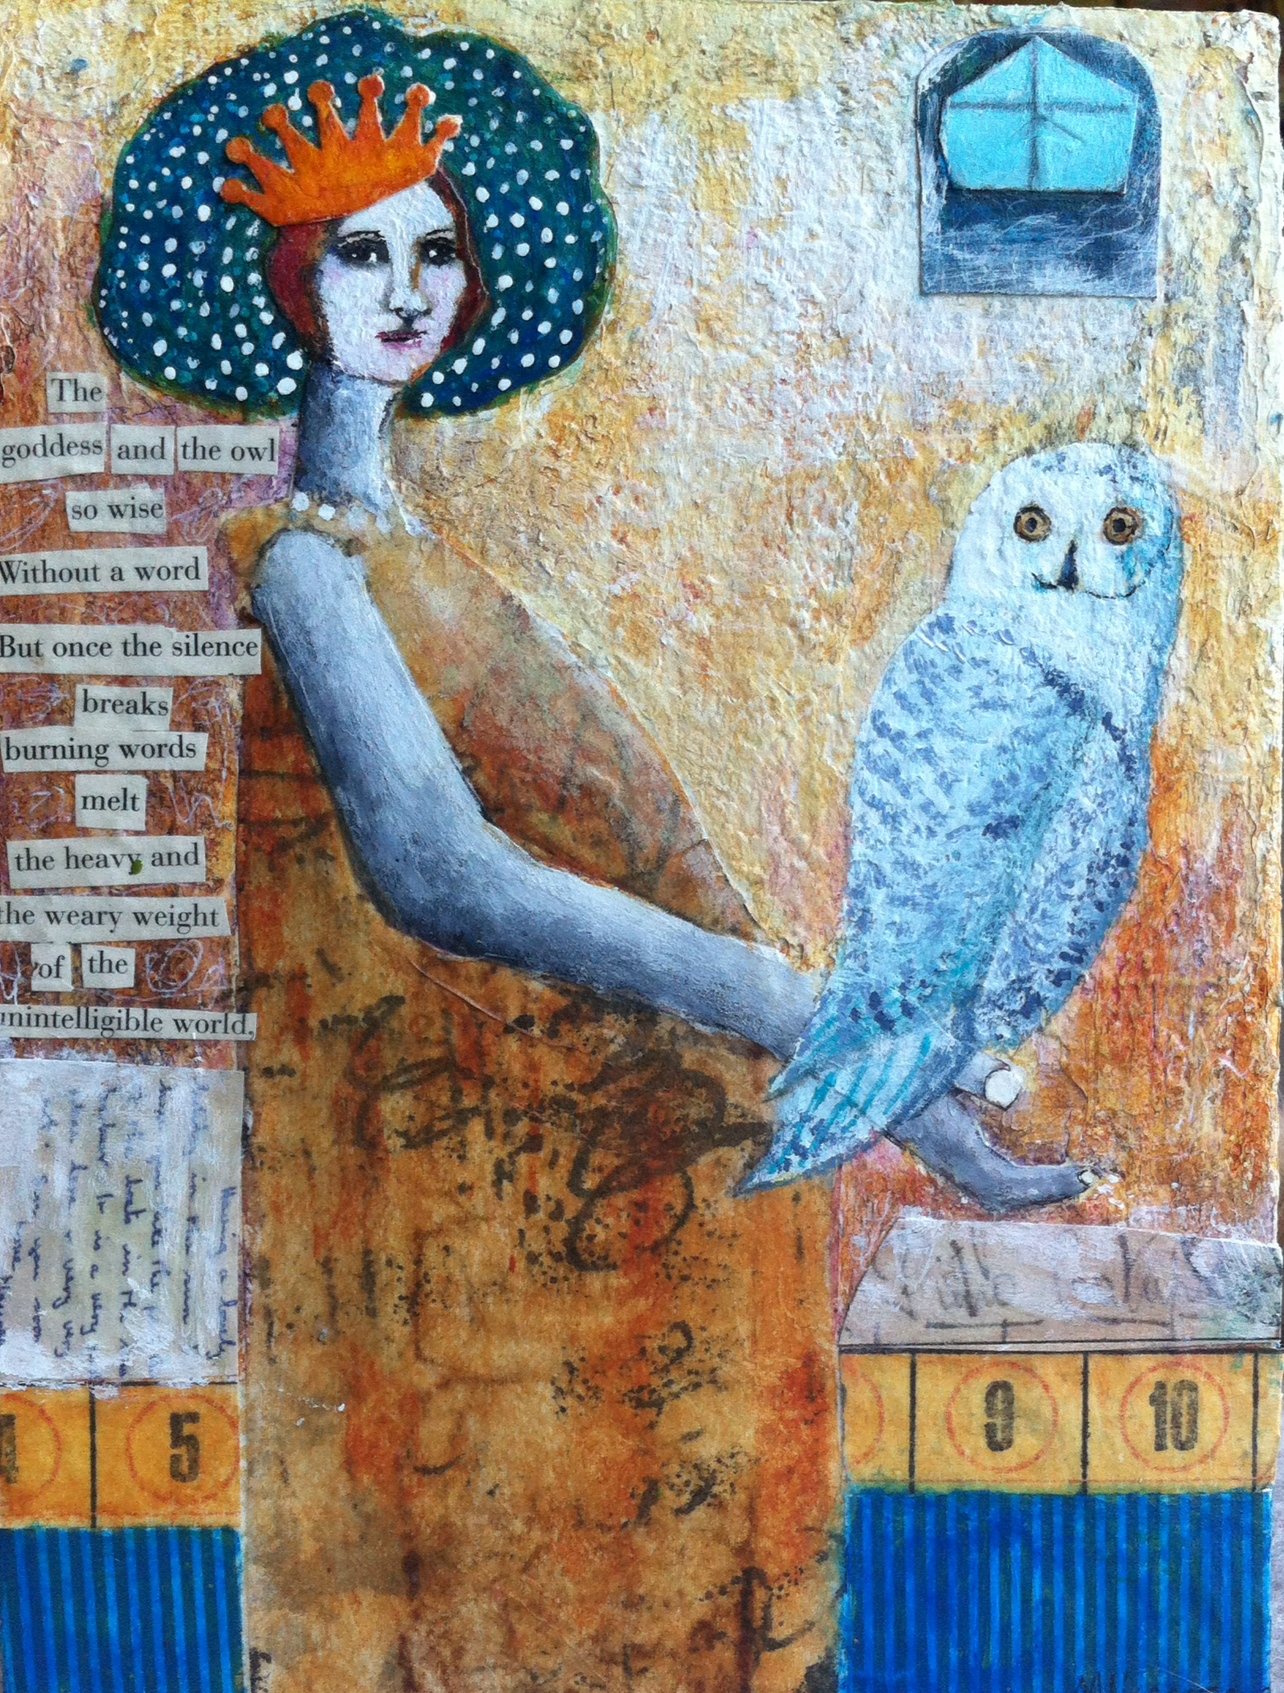 Goddess and the Owl